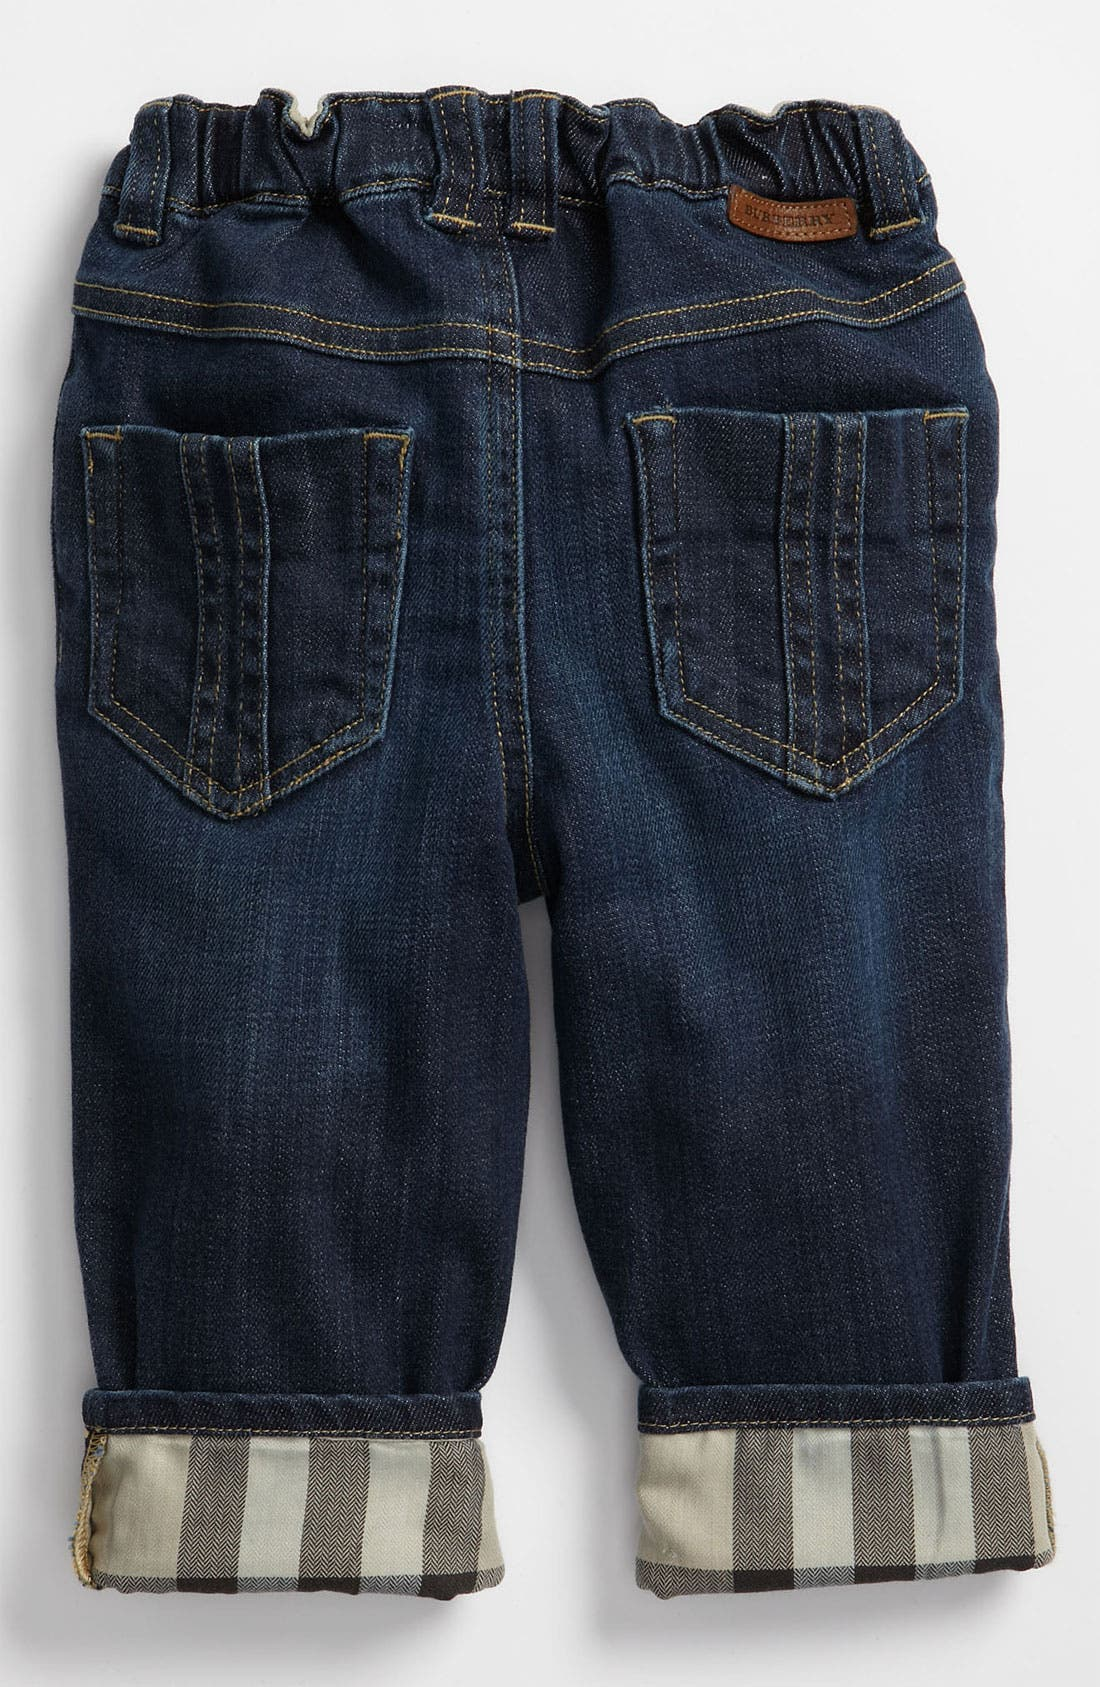 Alternate Image 1 Selected - Burberry Check Lined Jeans (Baby)